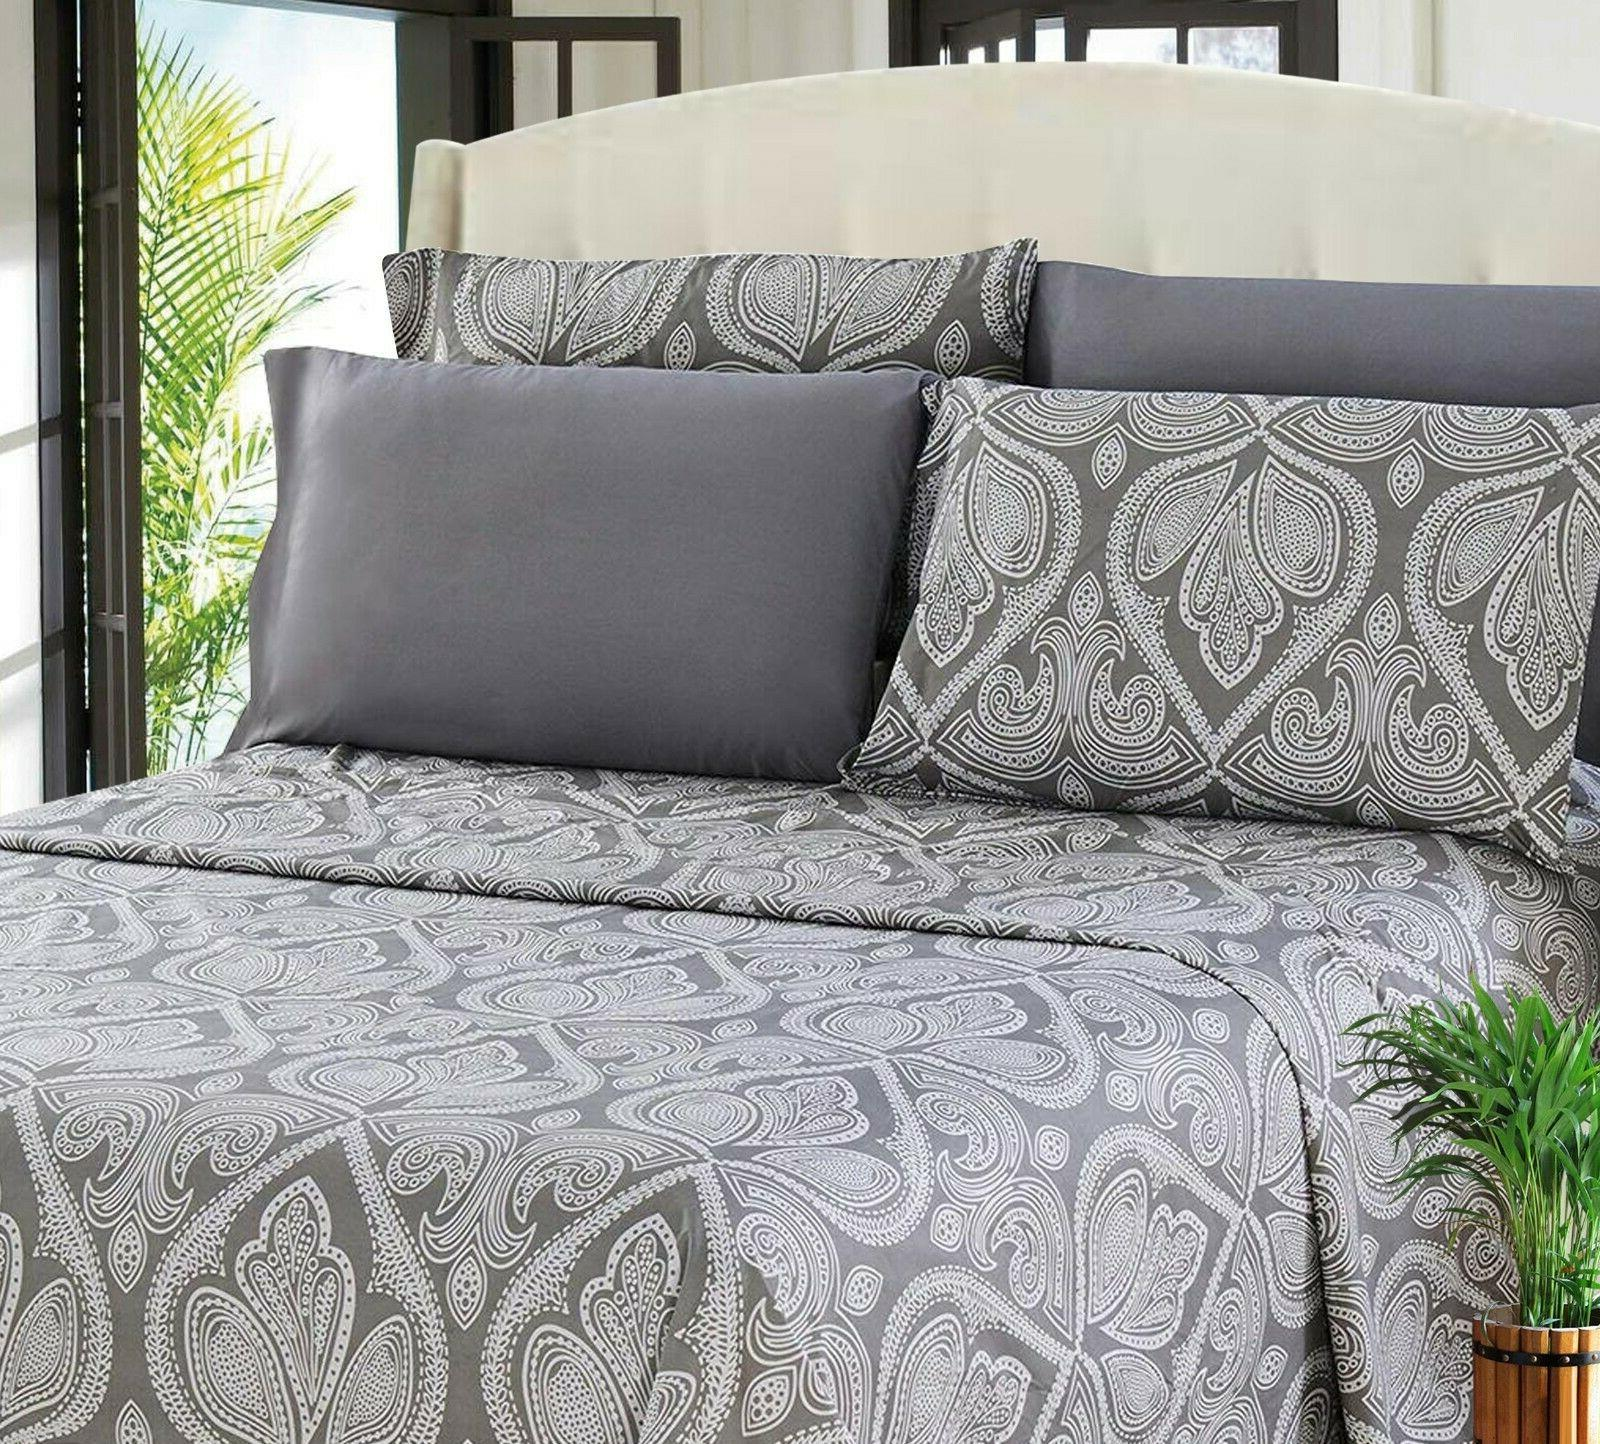 6 soft Bed Microfiber Sizes